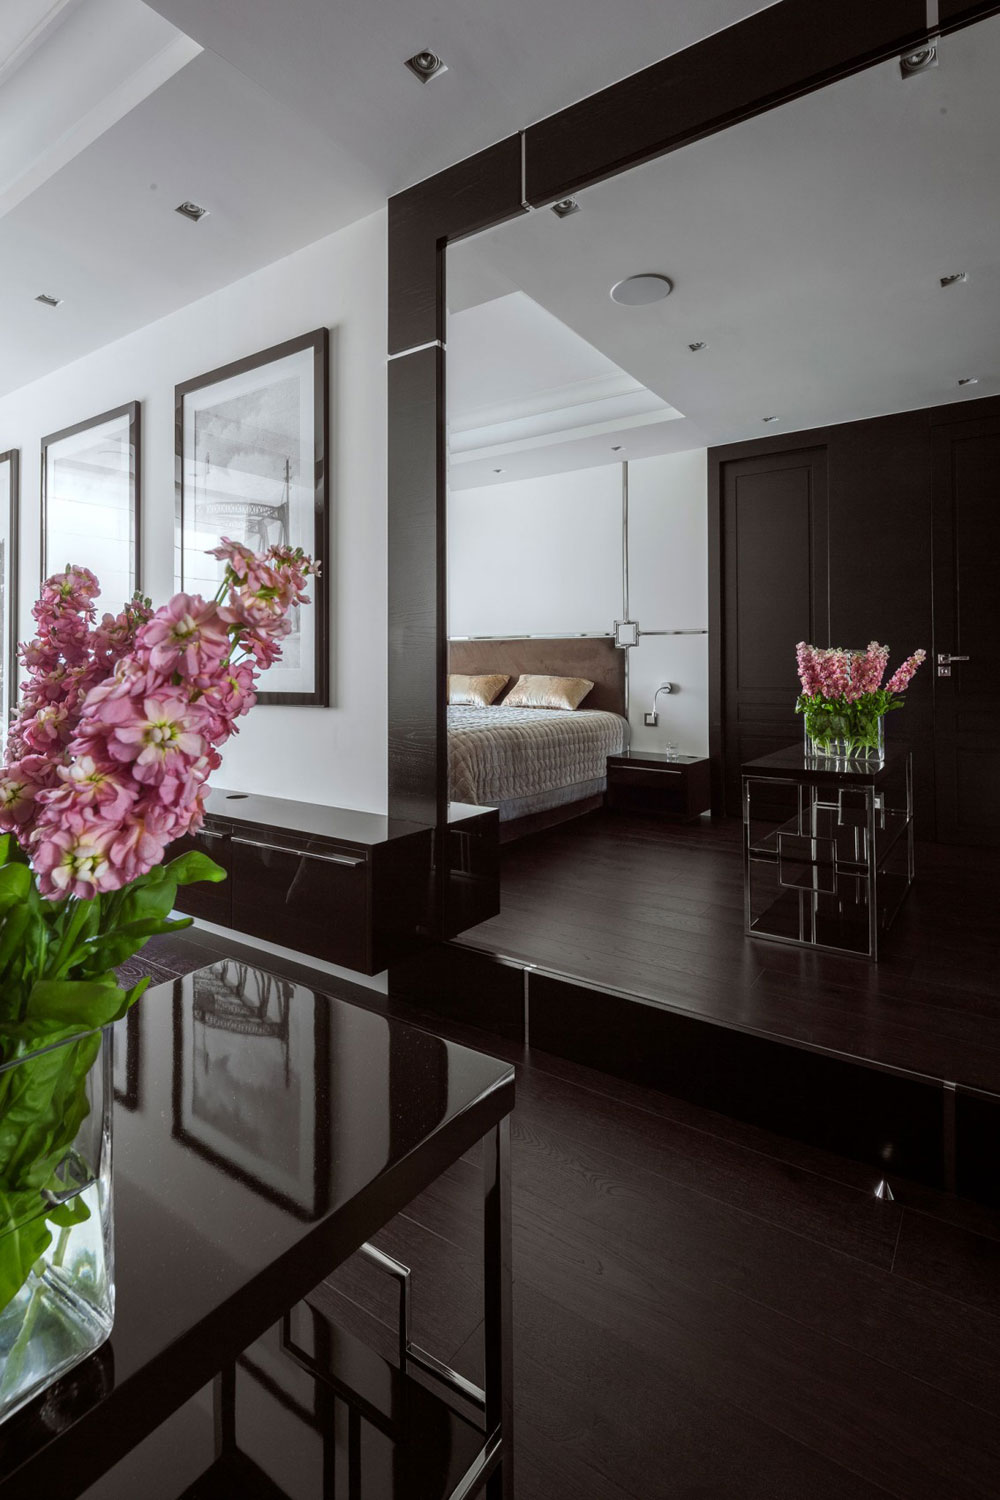 Apartment-with-the-look-and-feel-of-a-luxury-hotel-room-suite-9-Apartment-with-the-look-and-feel-of-a-luxury-hotel room-suite